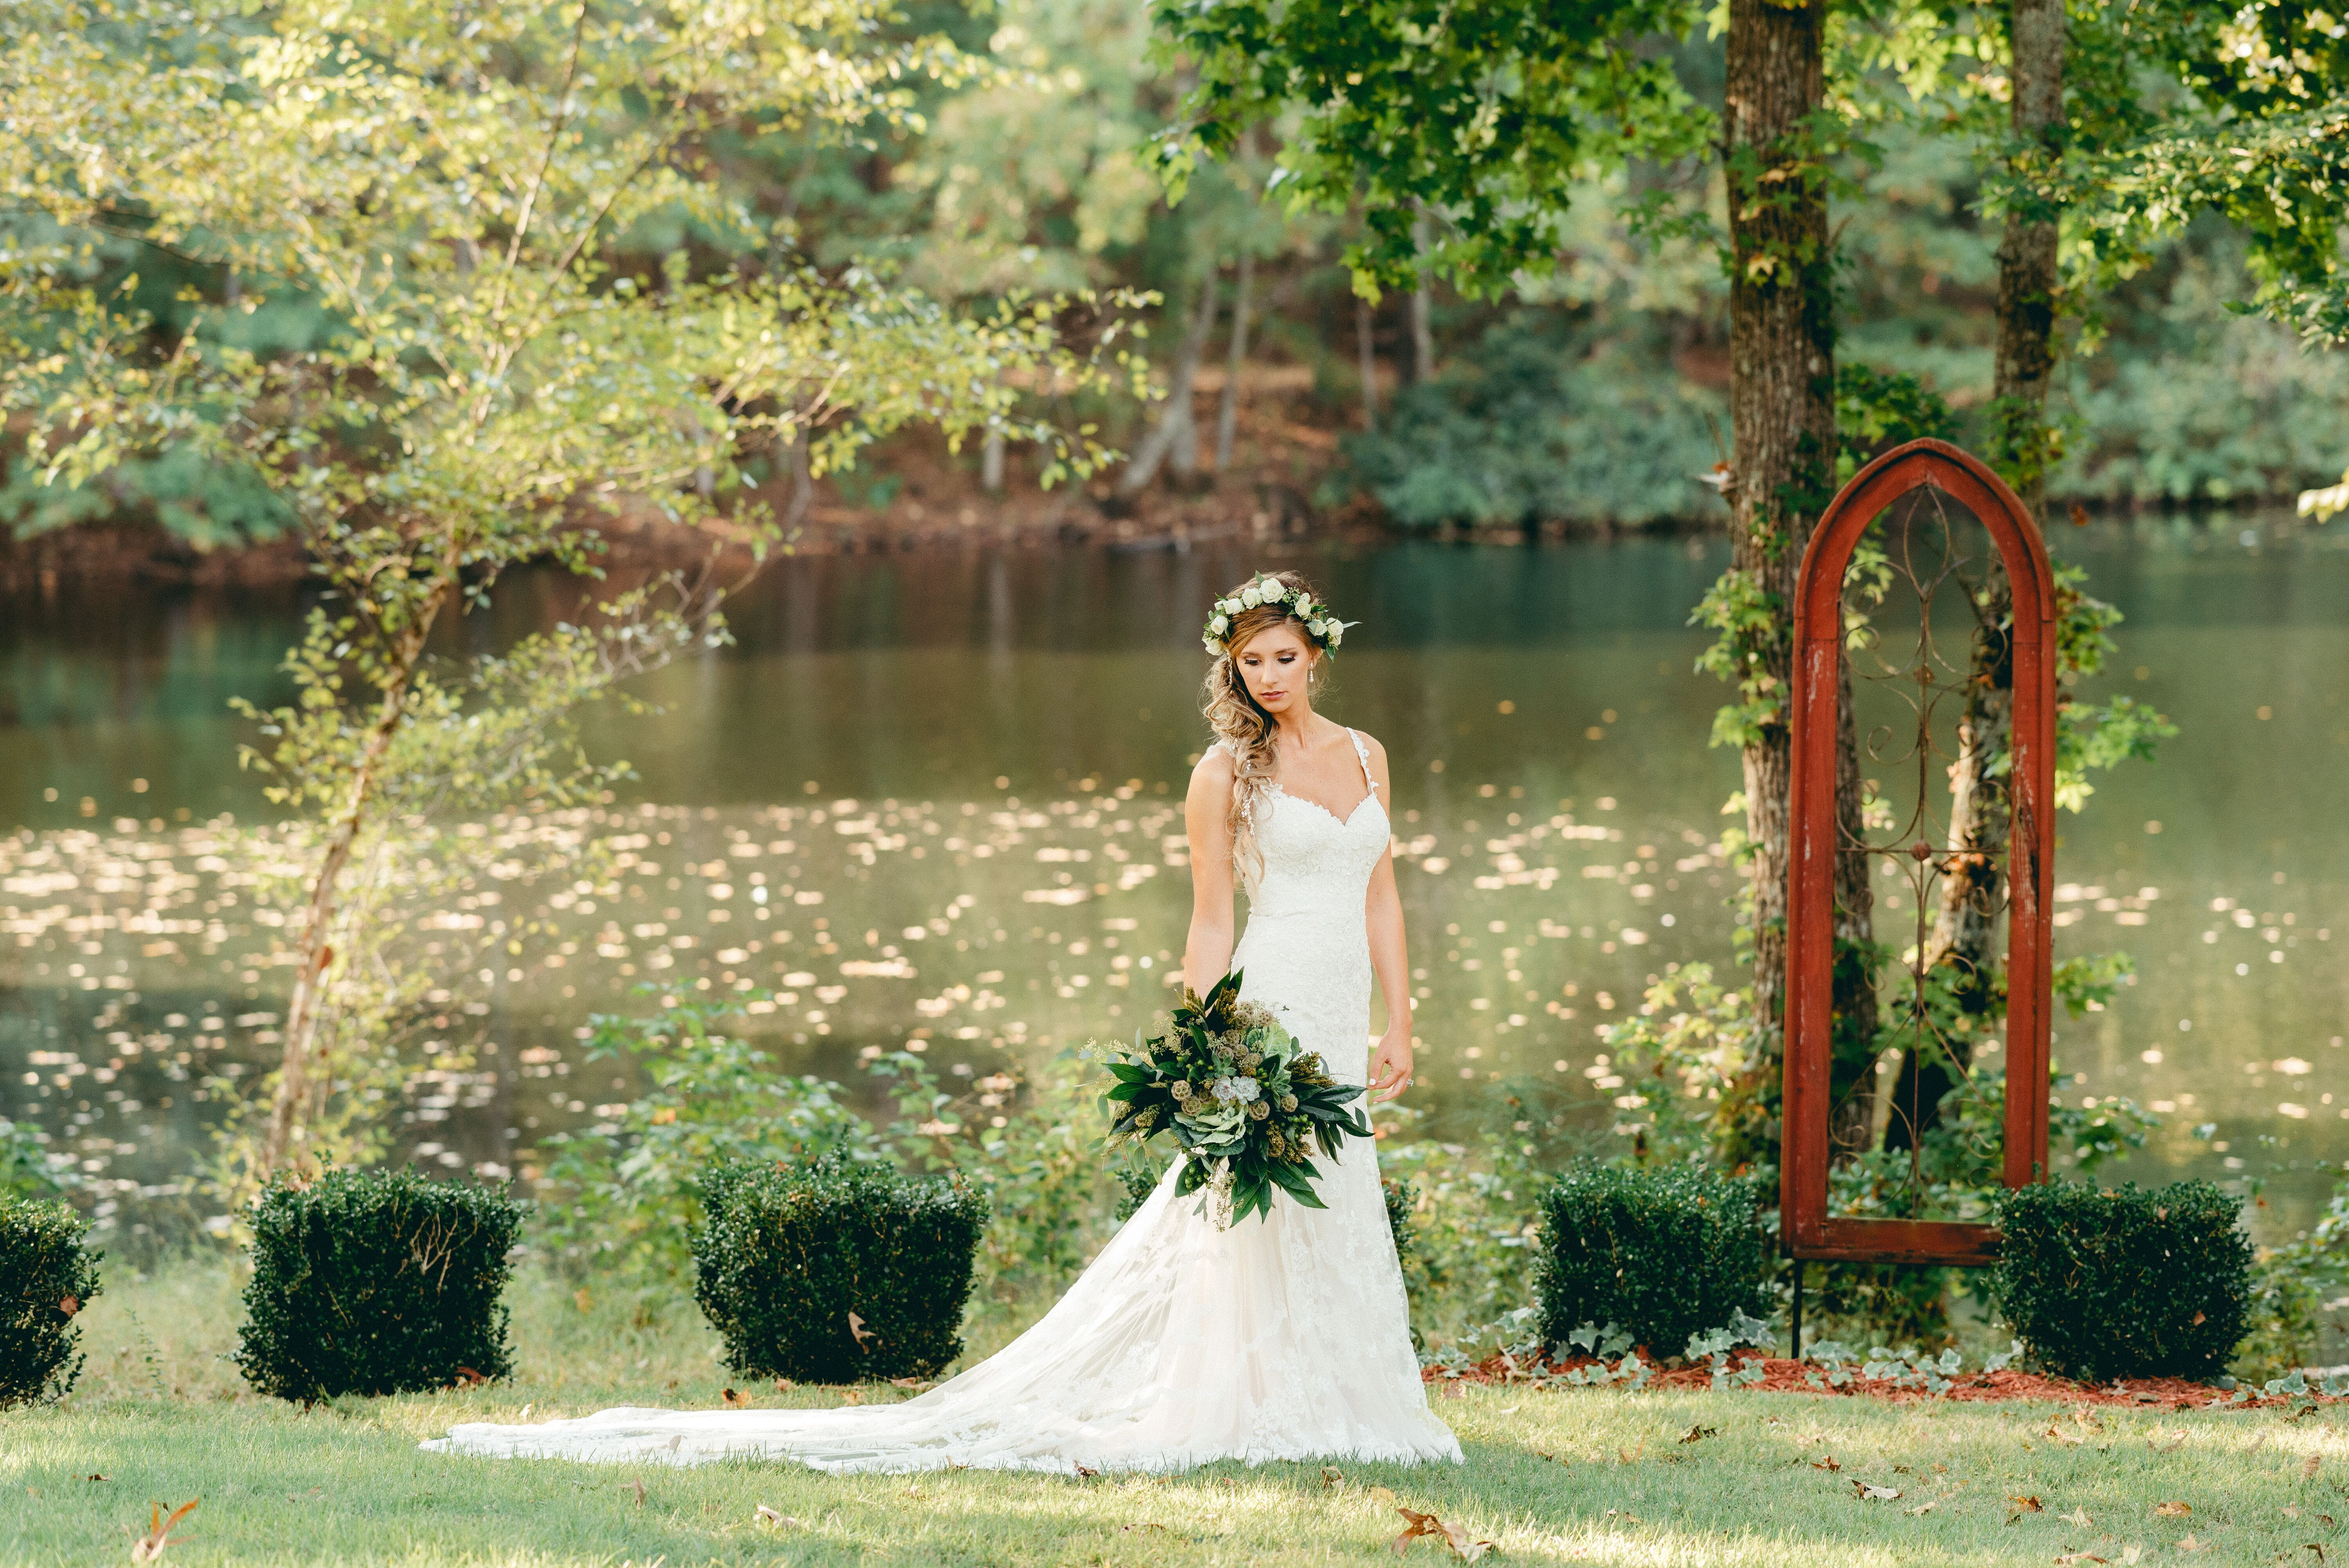 Grand Jour Mother Of The Bride Outfits And: North Little Rock, AR